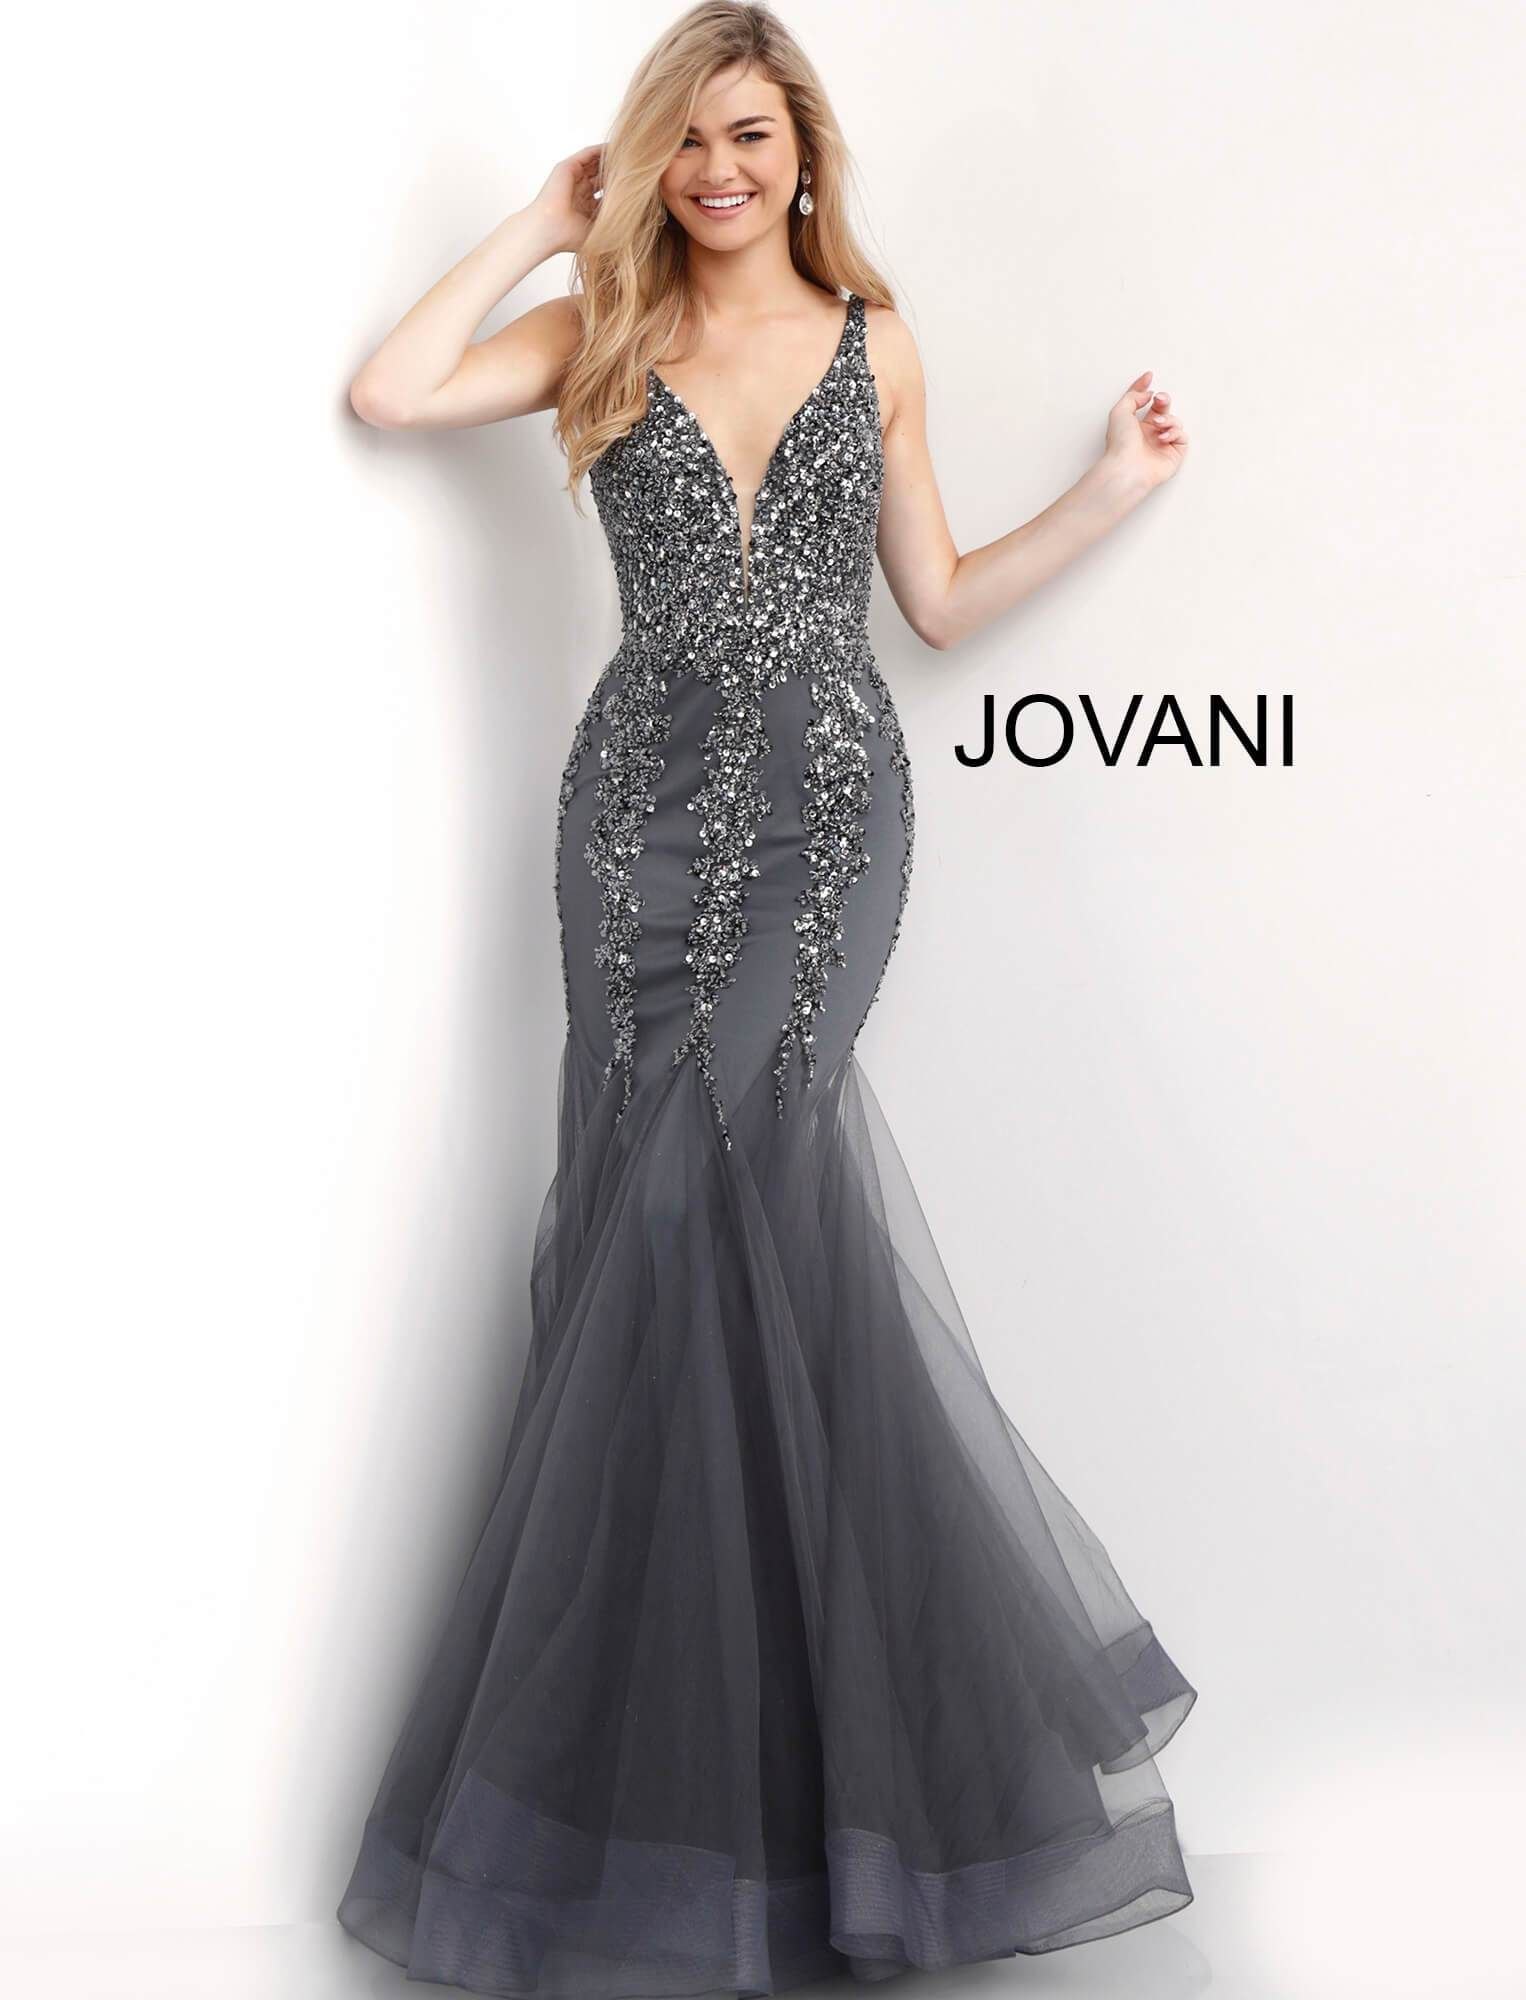 012e2307a66 Jovani prom dress style 63700 in 2019